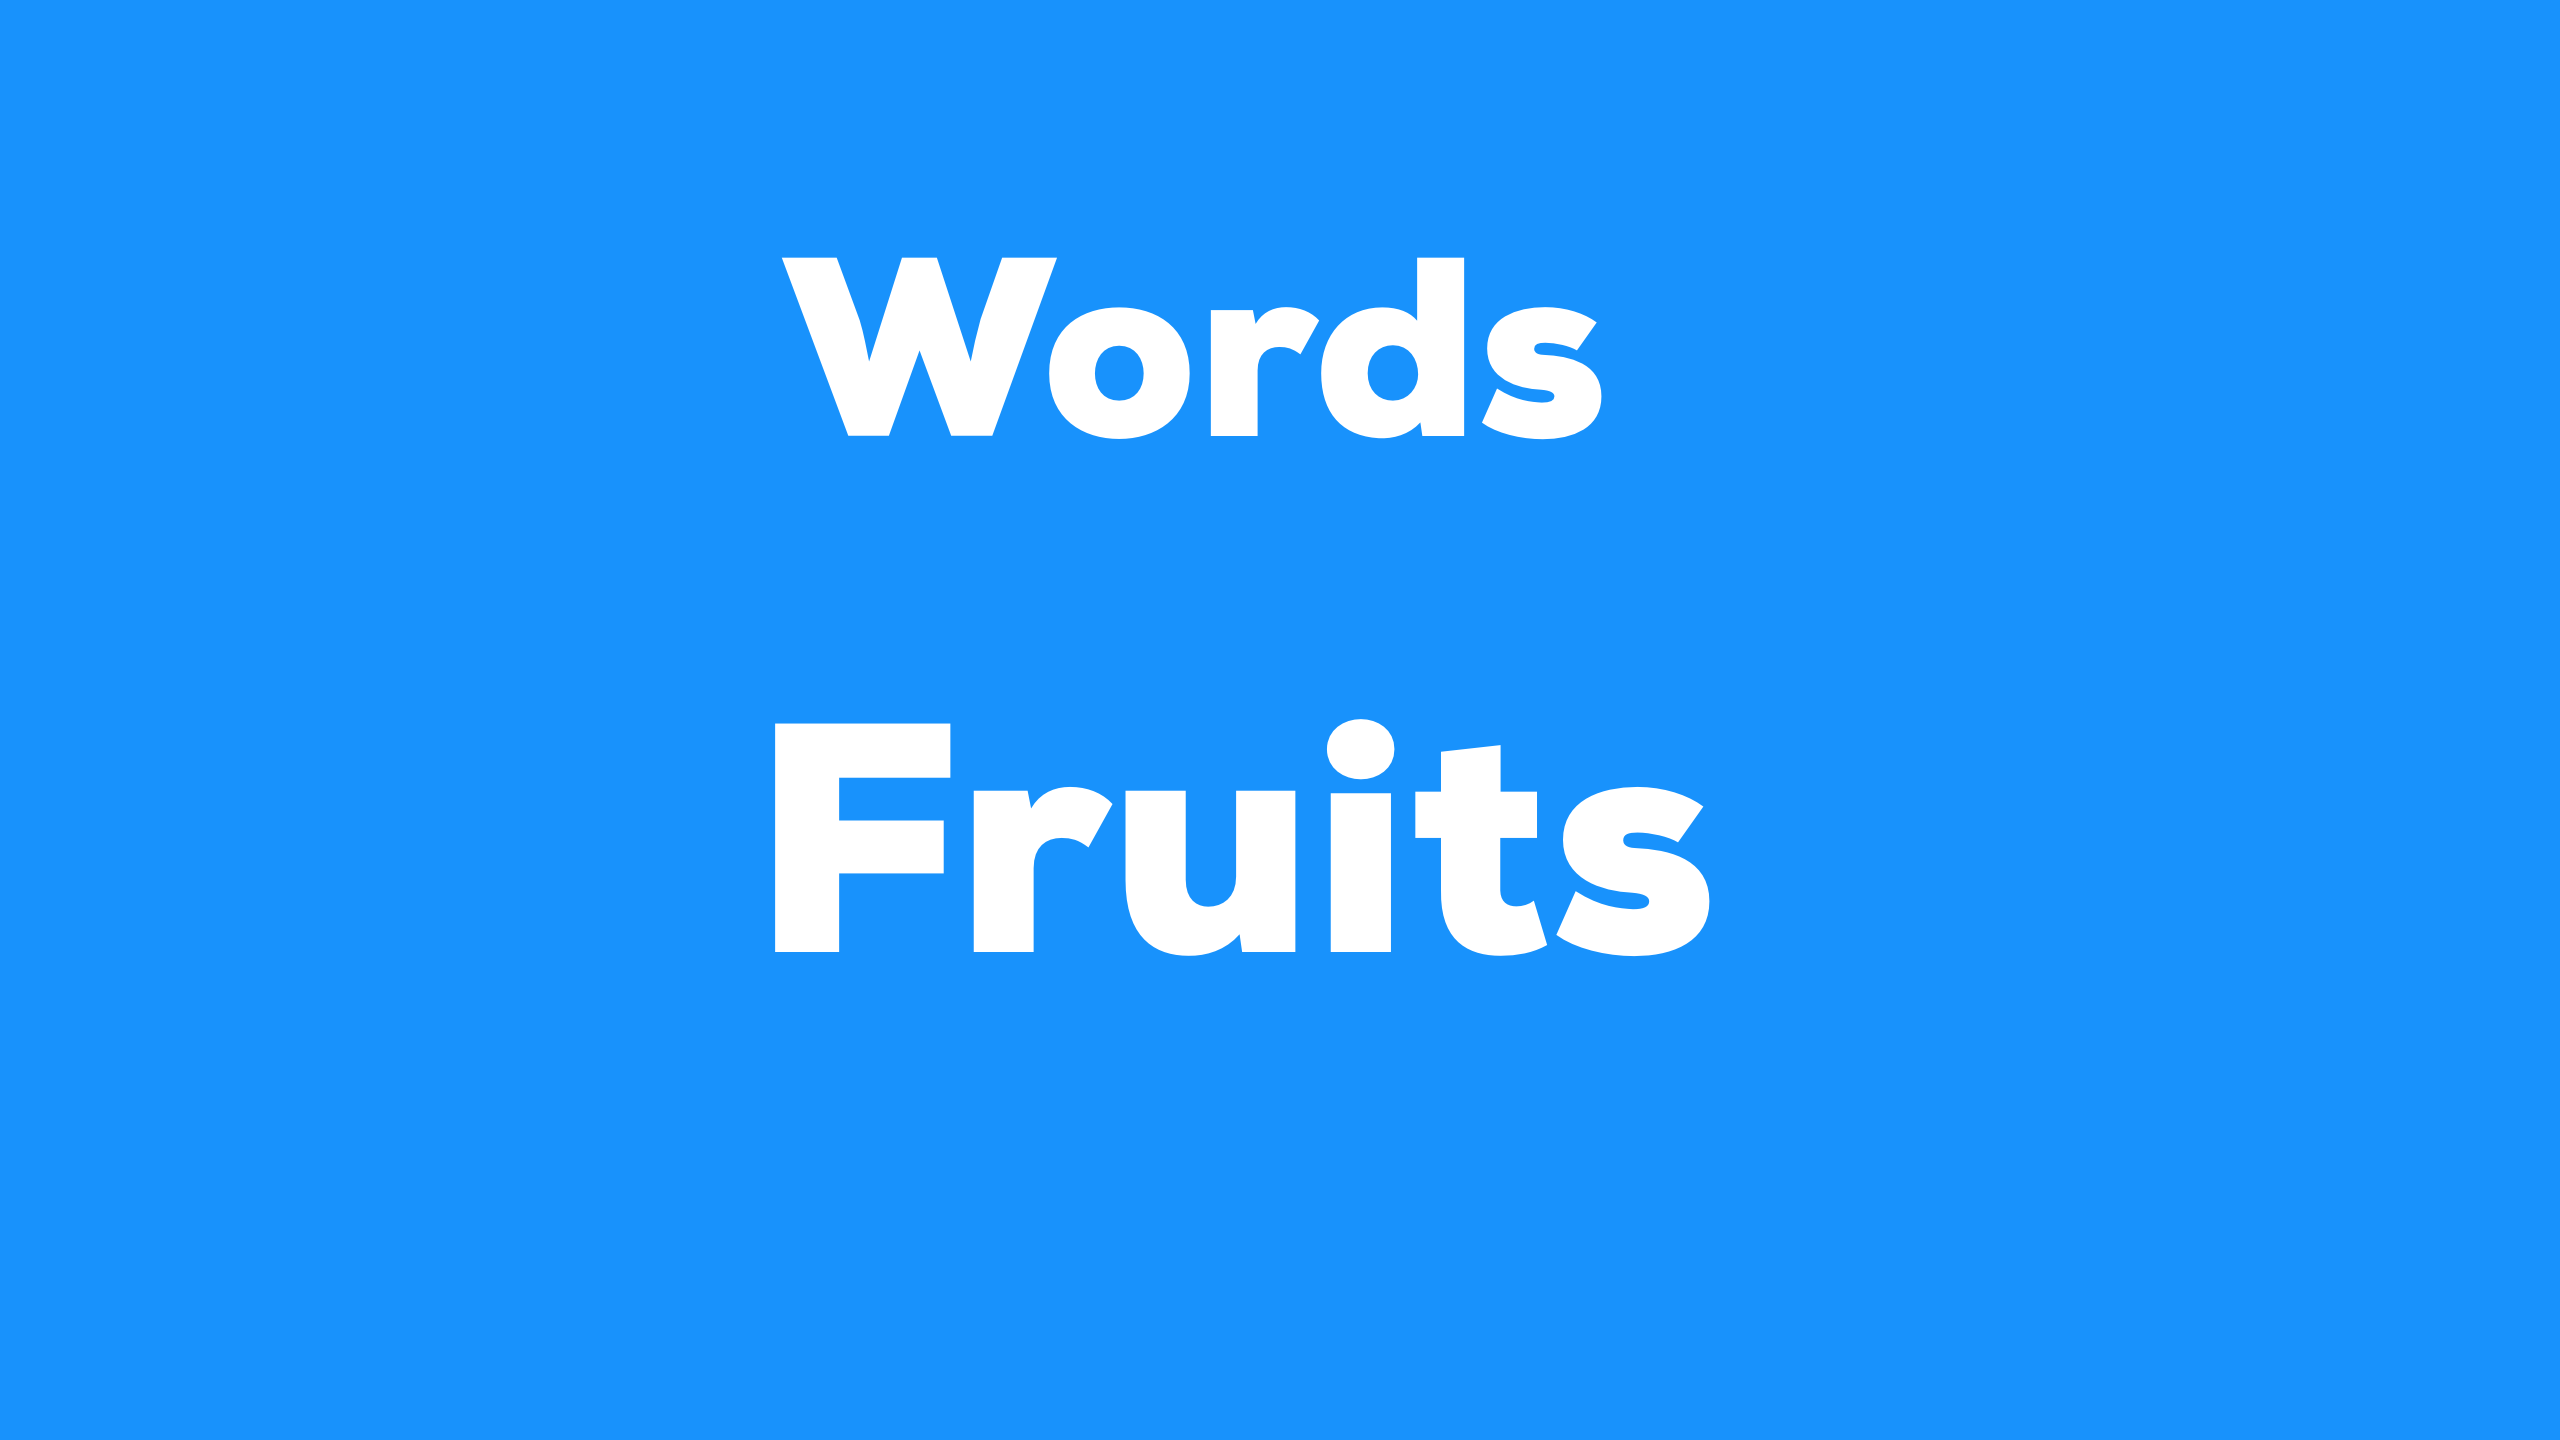 Words-Fruits 難易度☆